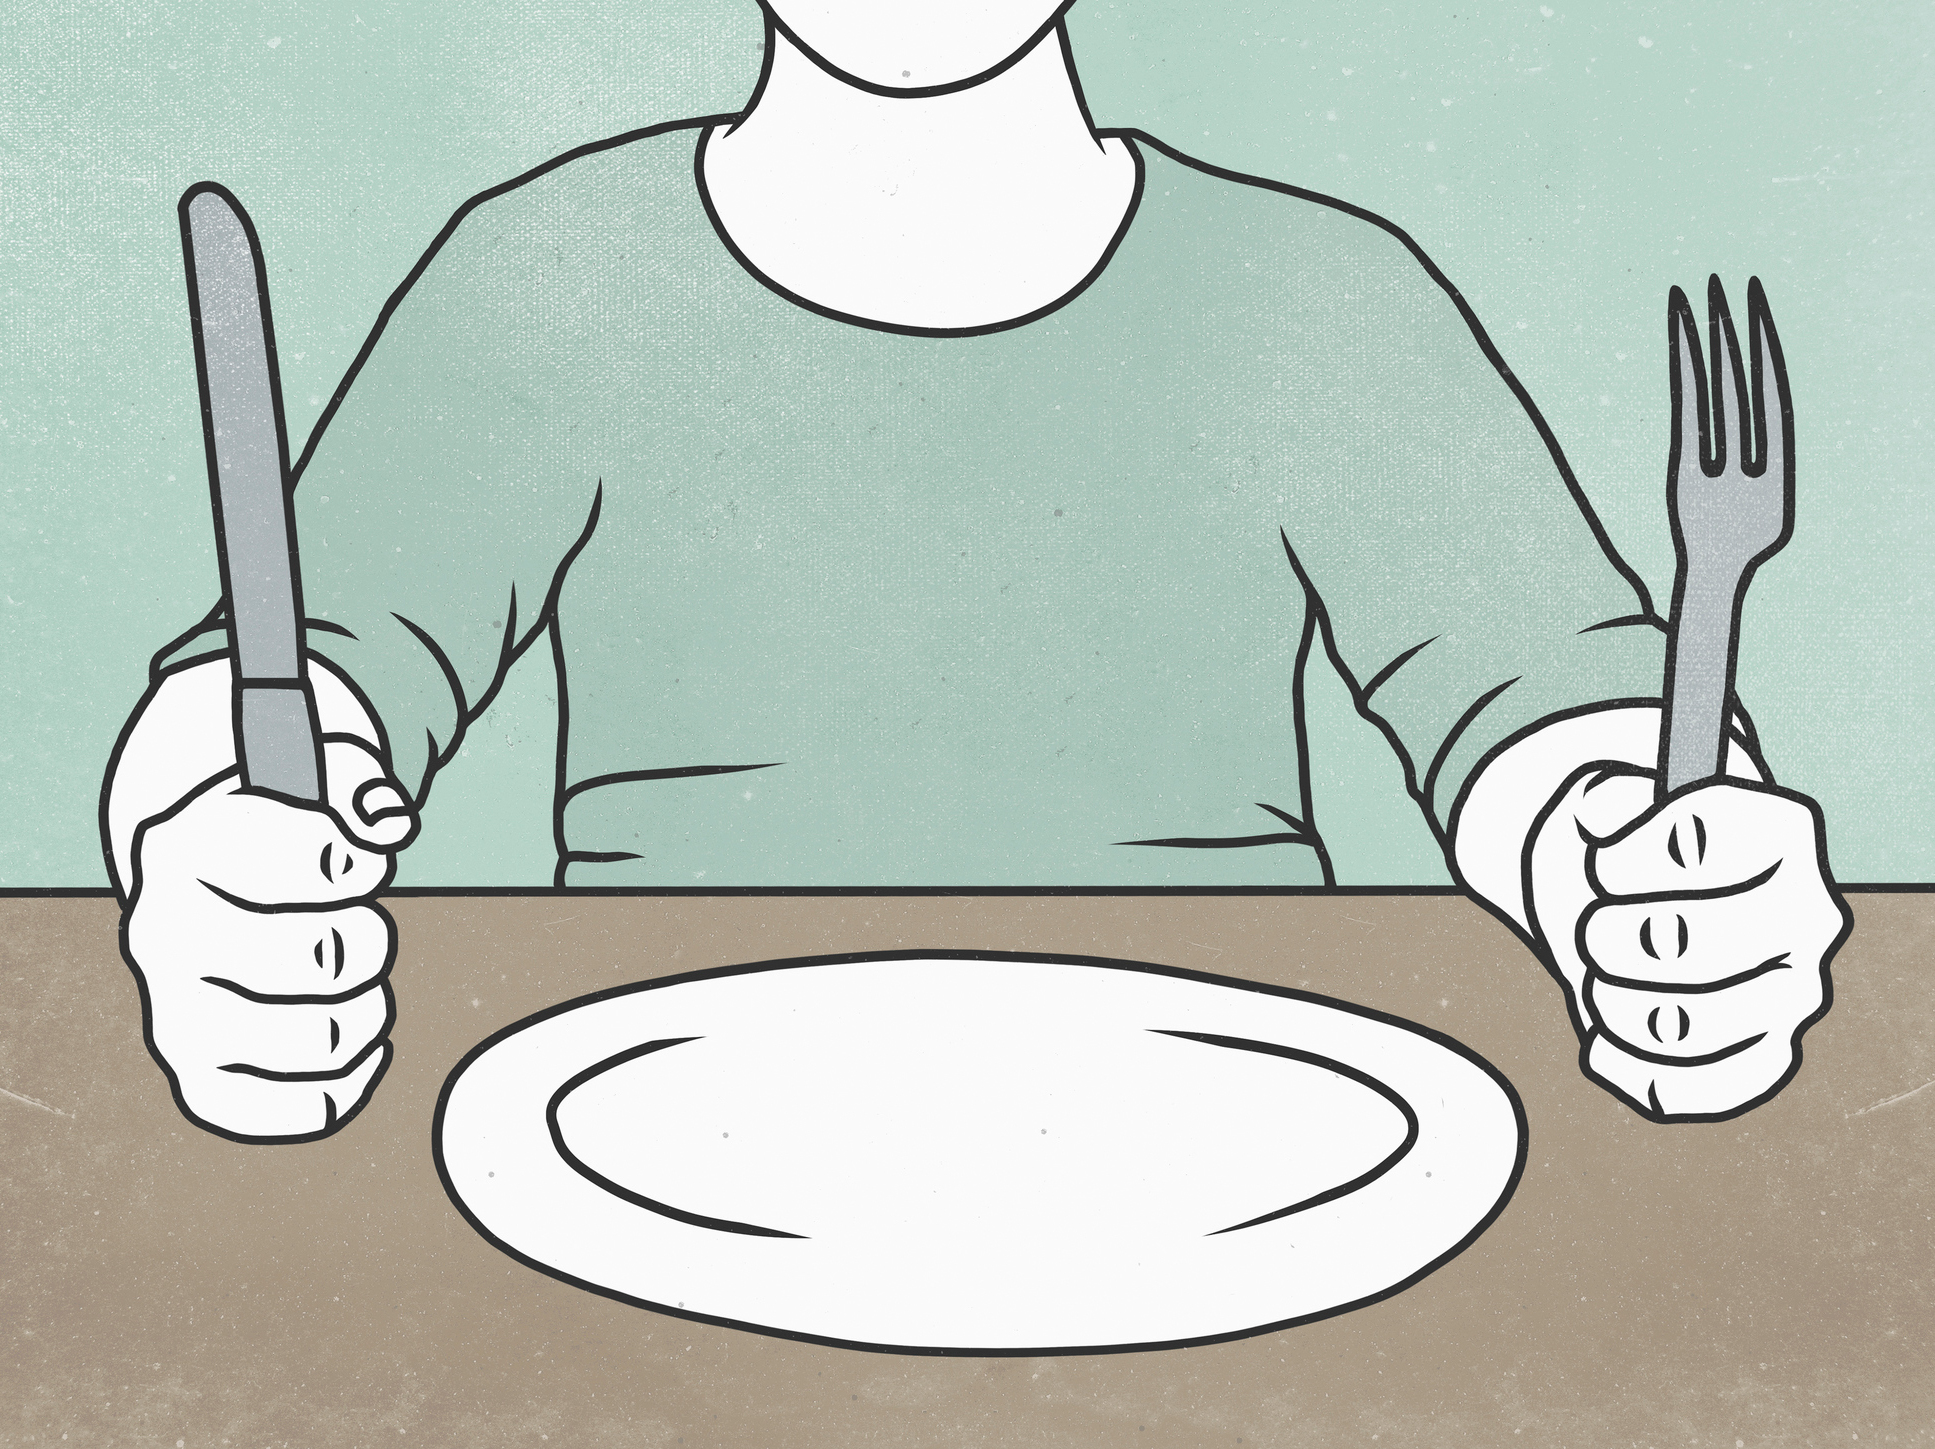 How Hunger Pangs Can Make Nice People 'Hangry'